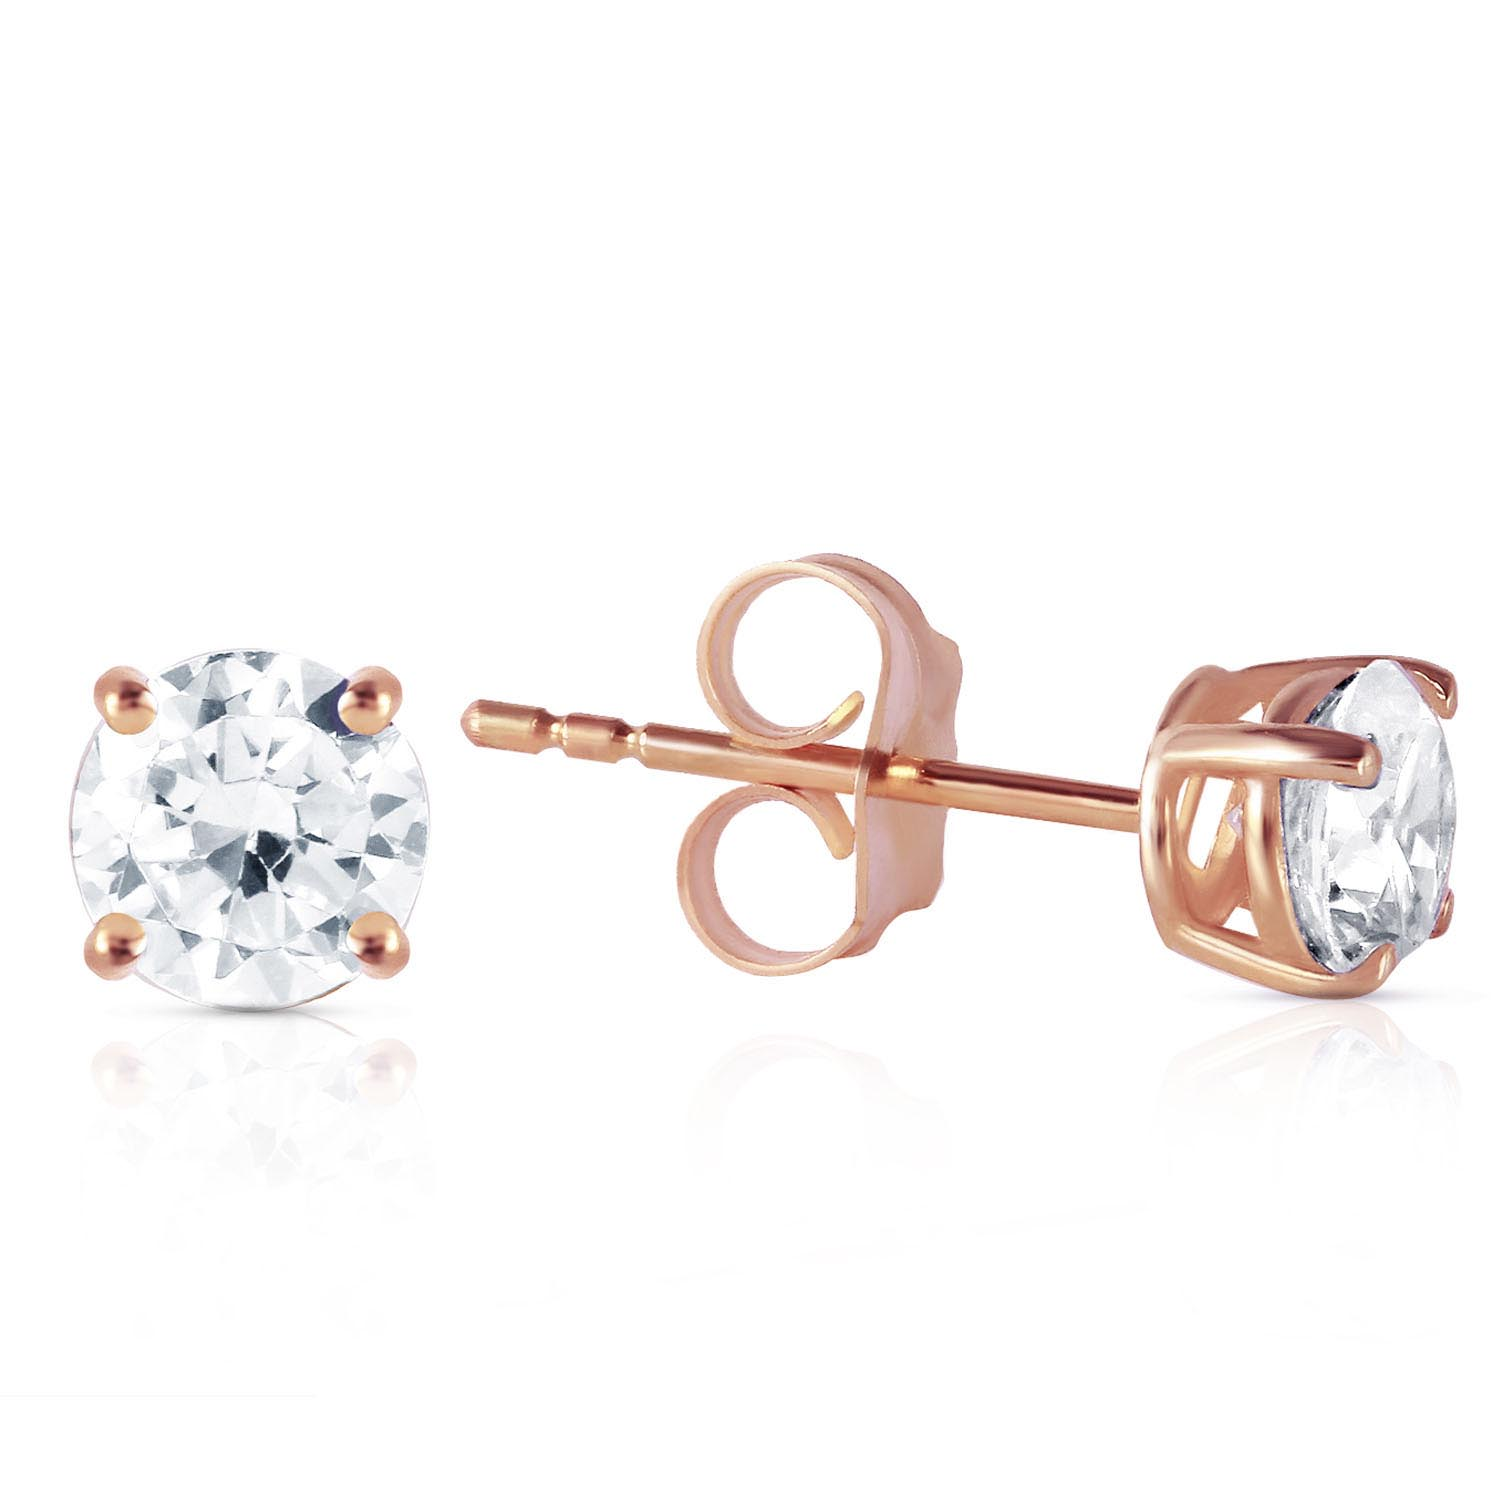 Diamond Stud Earrings 0.8 ctw in 9ct Rose Gold